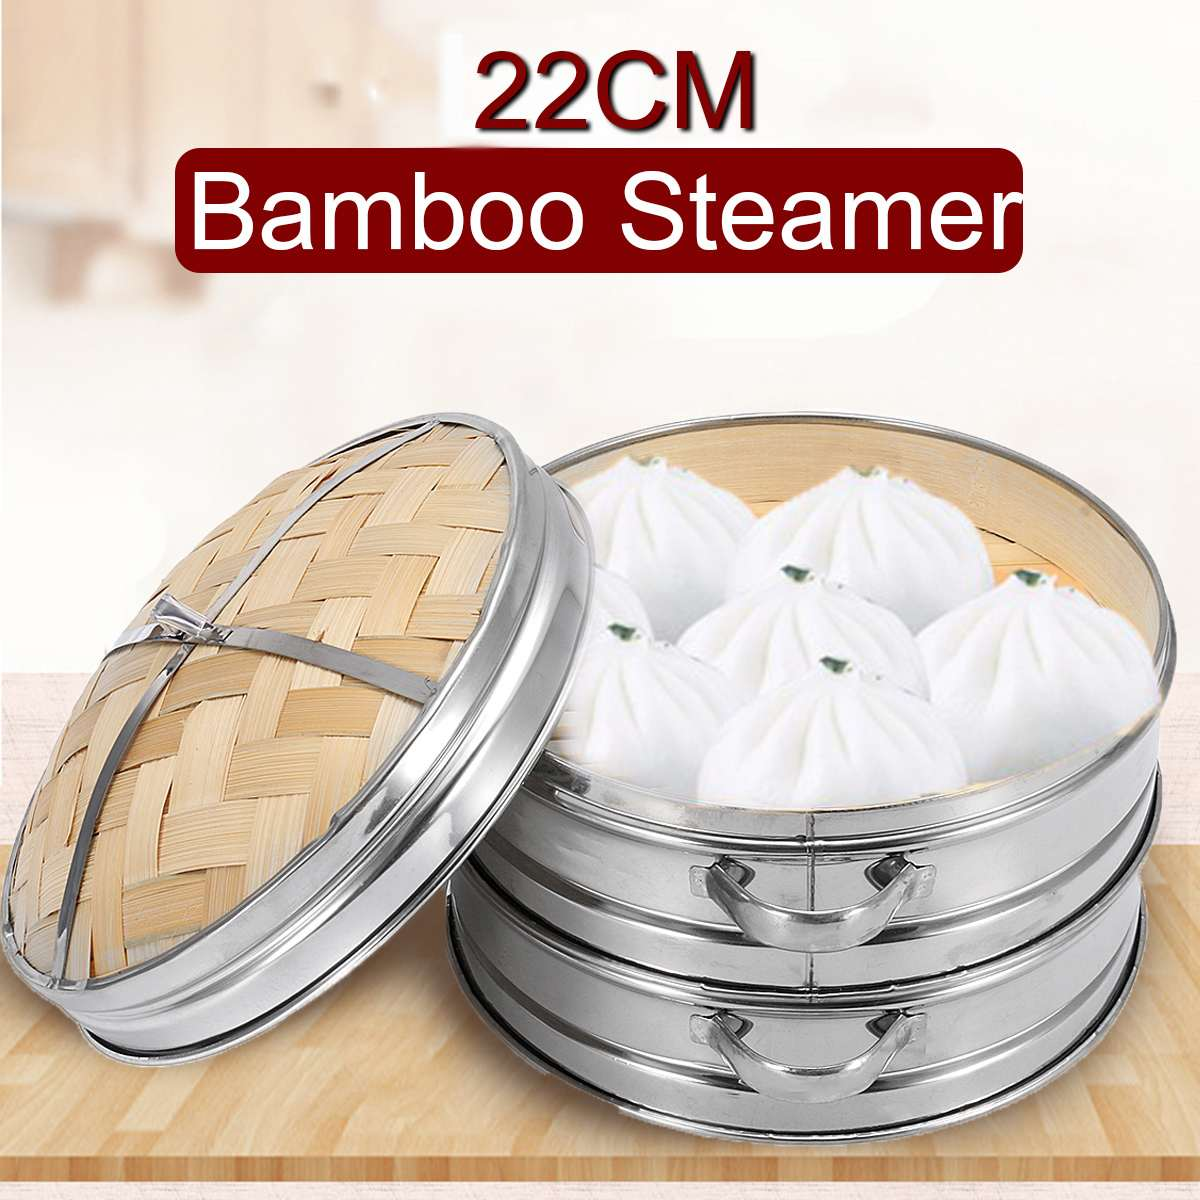 2 Tier Bamboo Steamer With Cover Basket Kitchen Cookware For Dumpling Fish Rice Vegetable Pasta Chinese Heating Steaming Basket